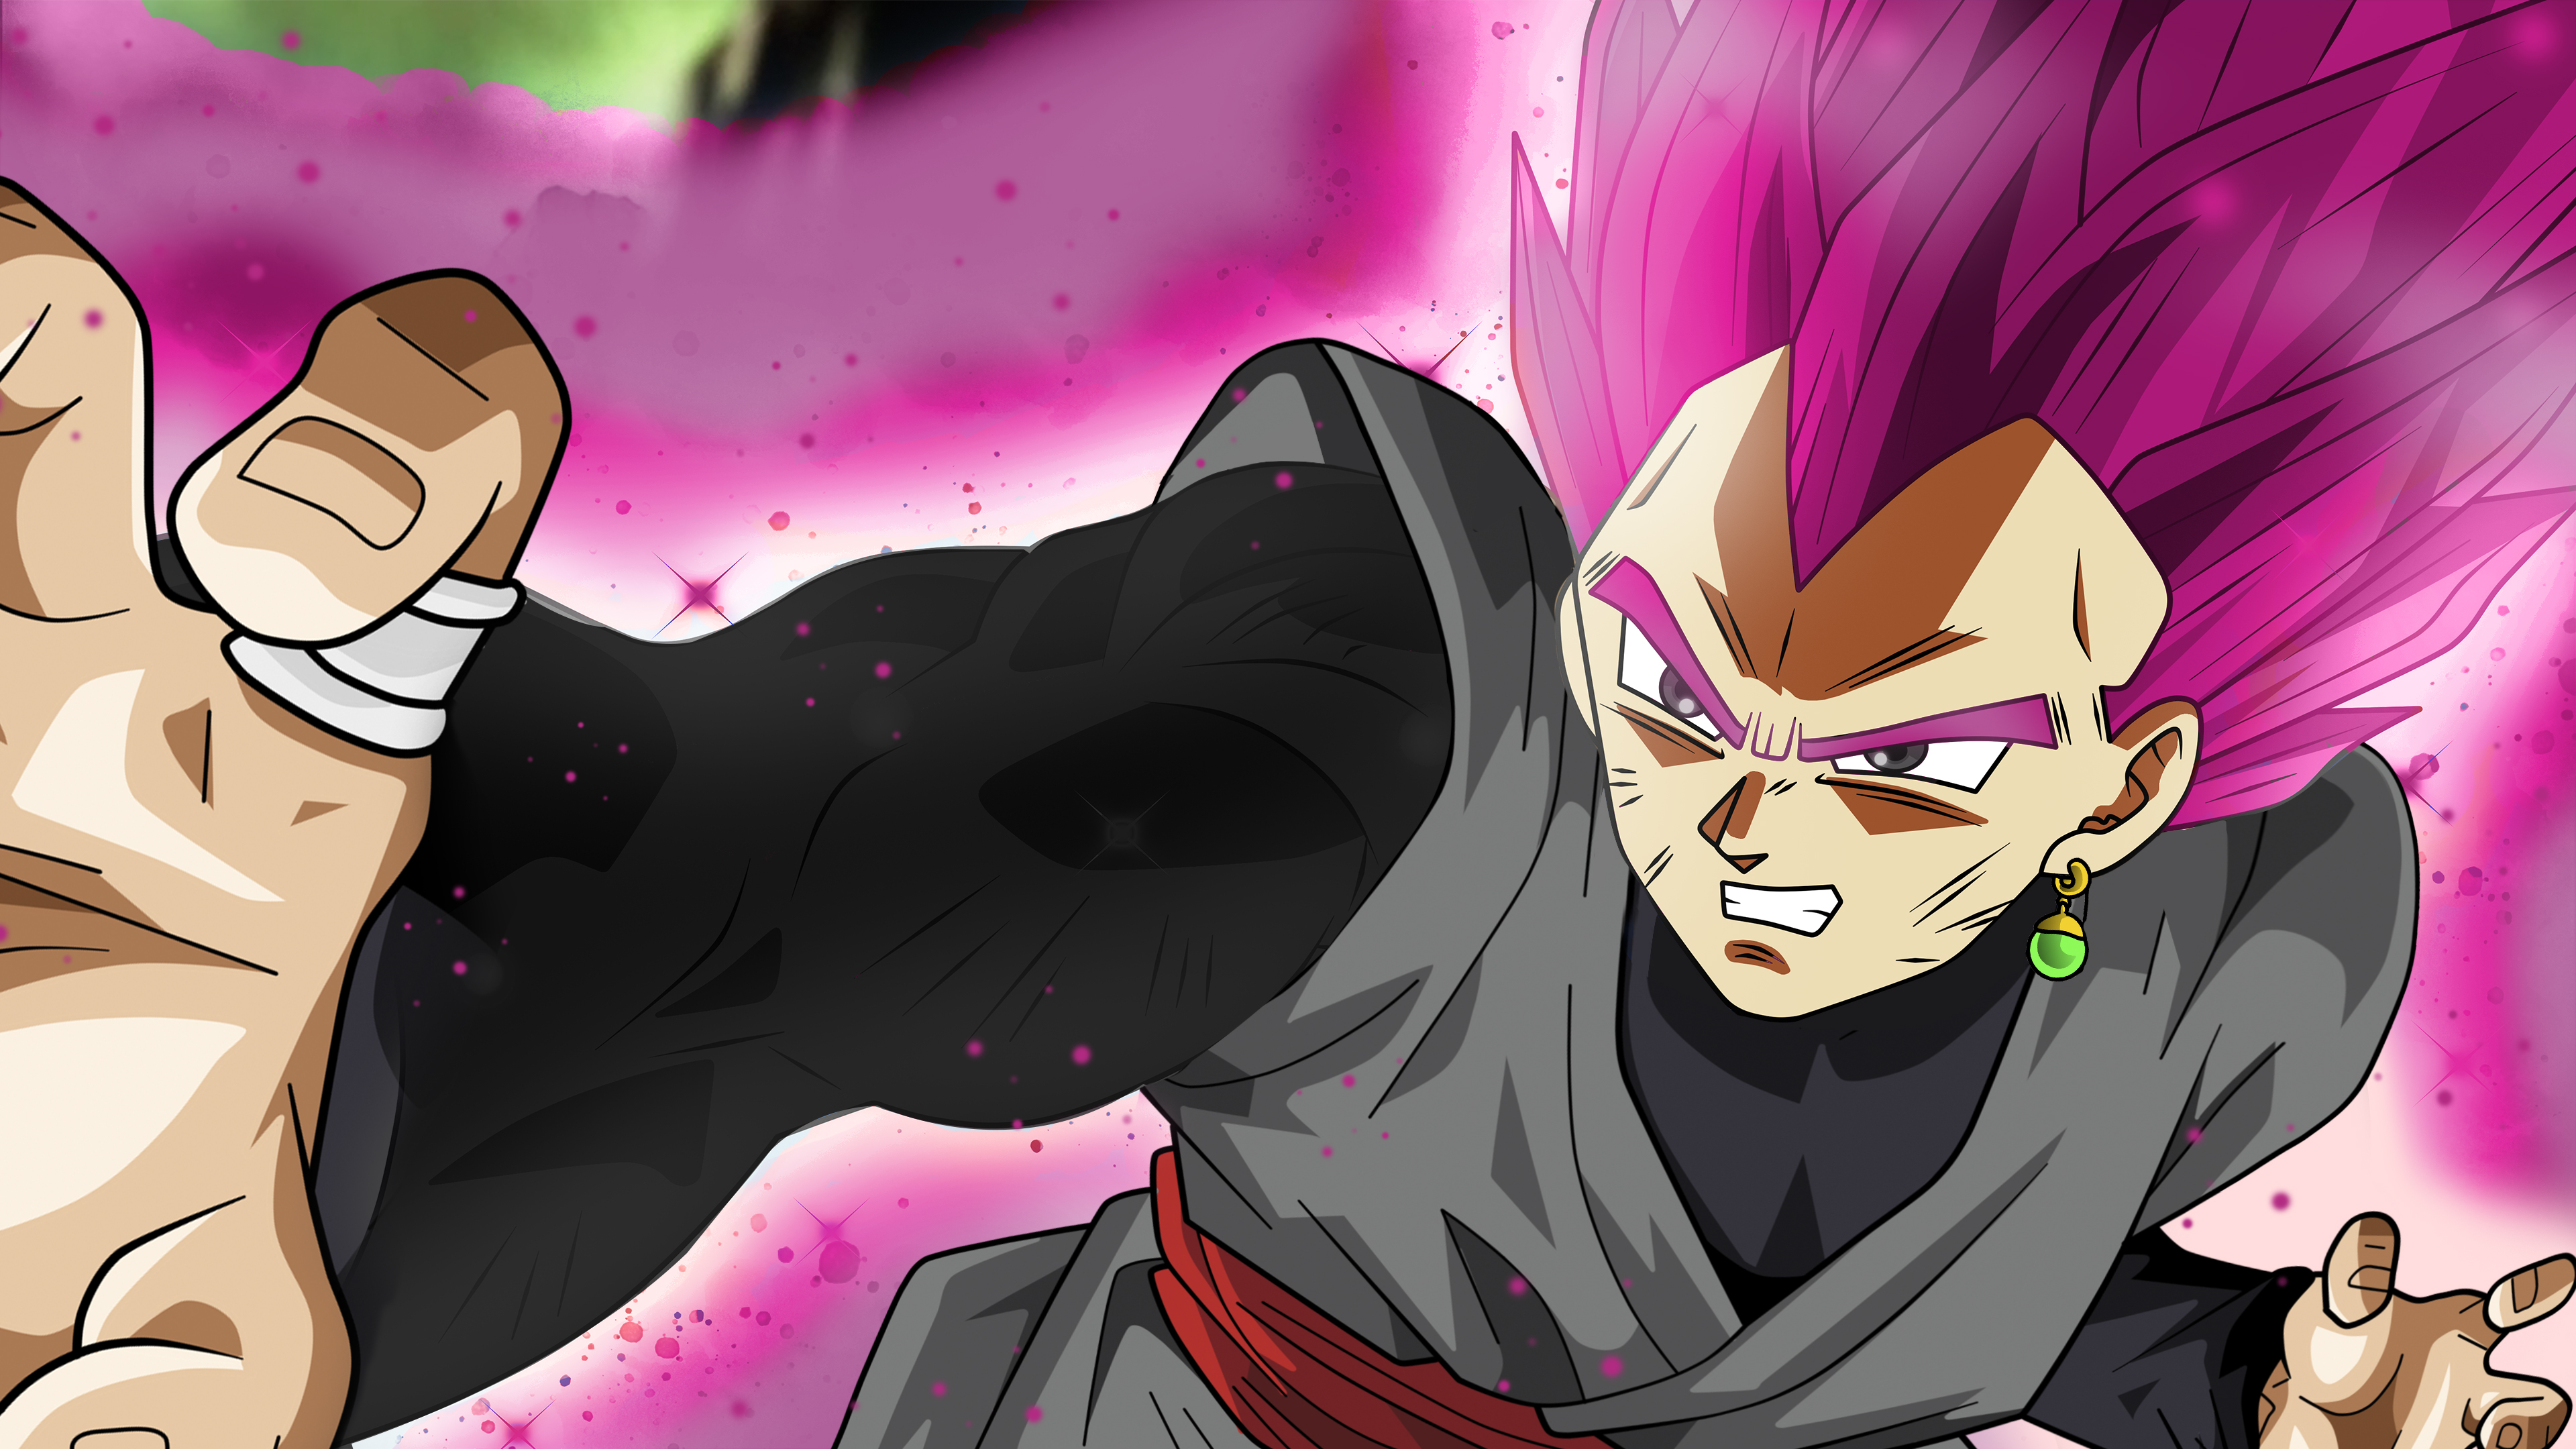 Vegeta Black 4k Hd Anime 4k Wallpapers Images Backgrounds Photos And Pictures